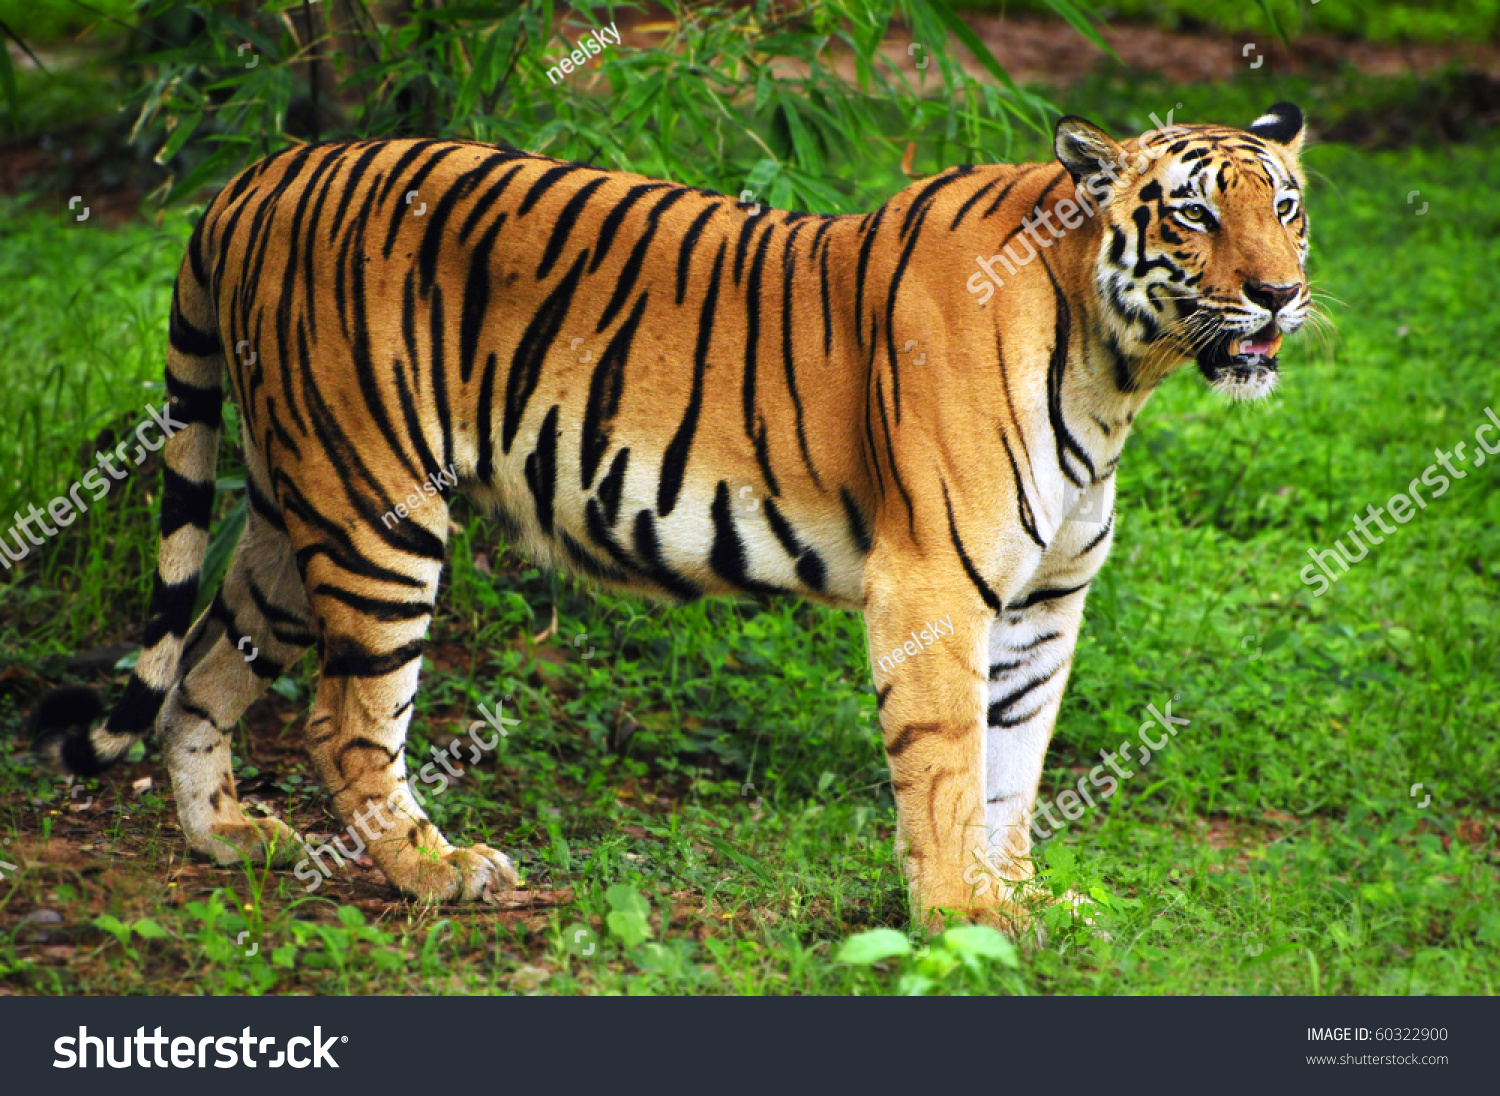 royal bengal tiger natural habitat sundarban stock photo (edit now